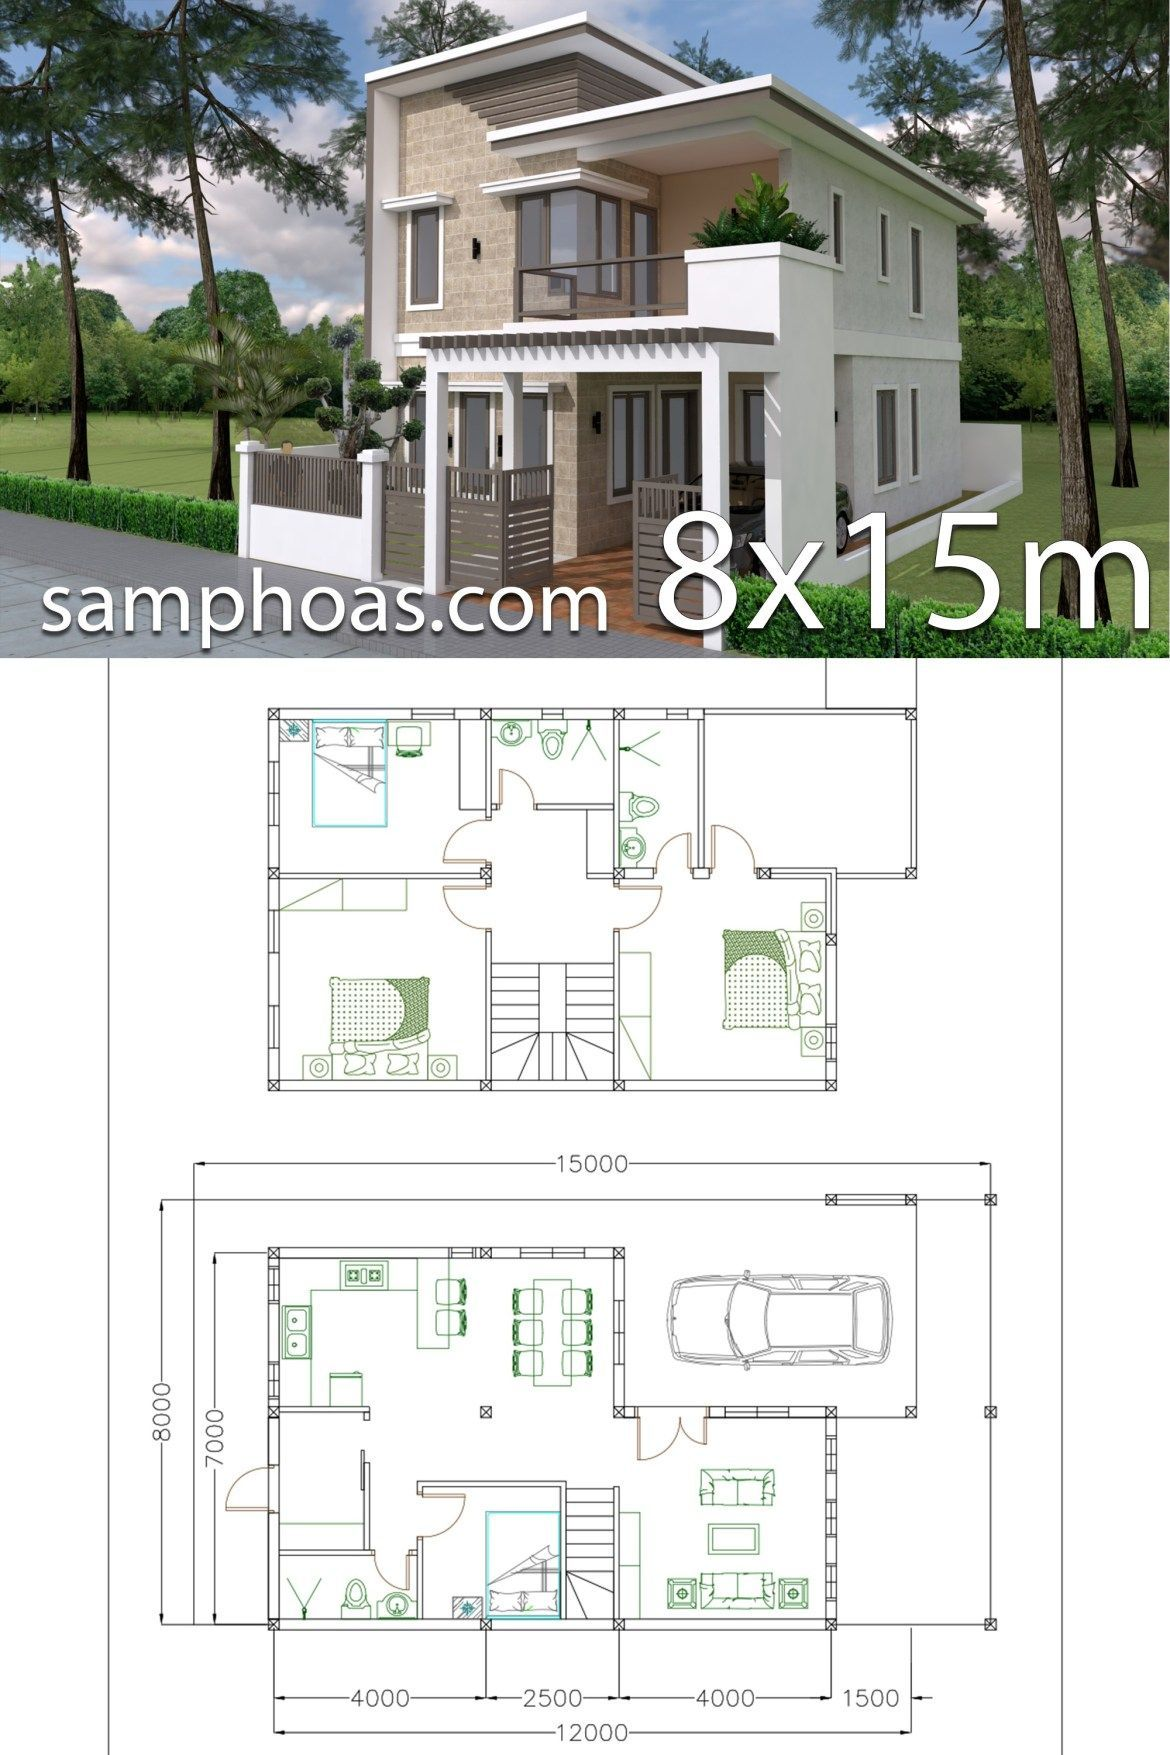 Home Design Plan 7x12m With 4 Bedrooms Plot 8x15 Model House Plan House Construction Plan House Plans